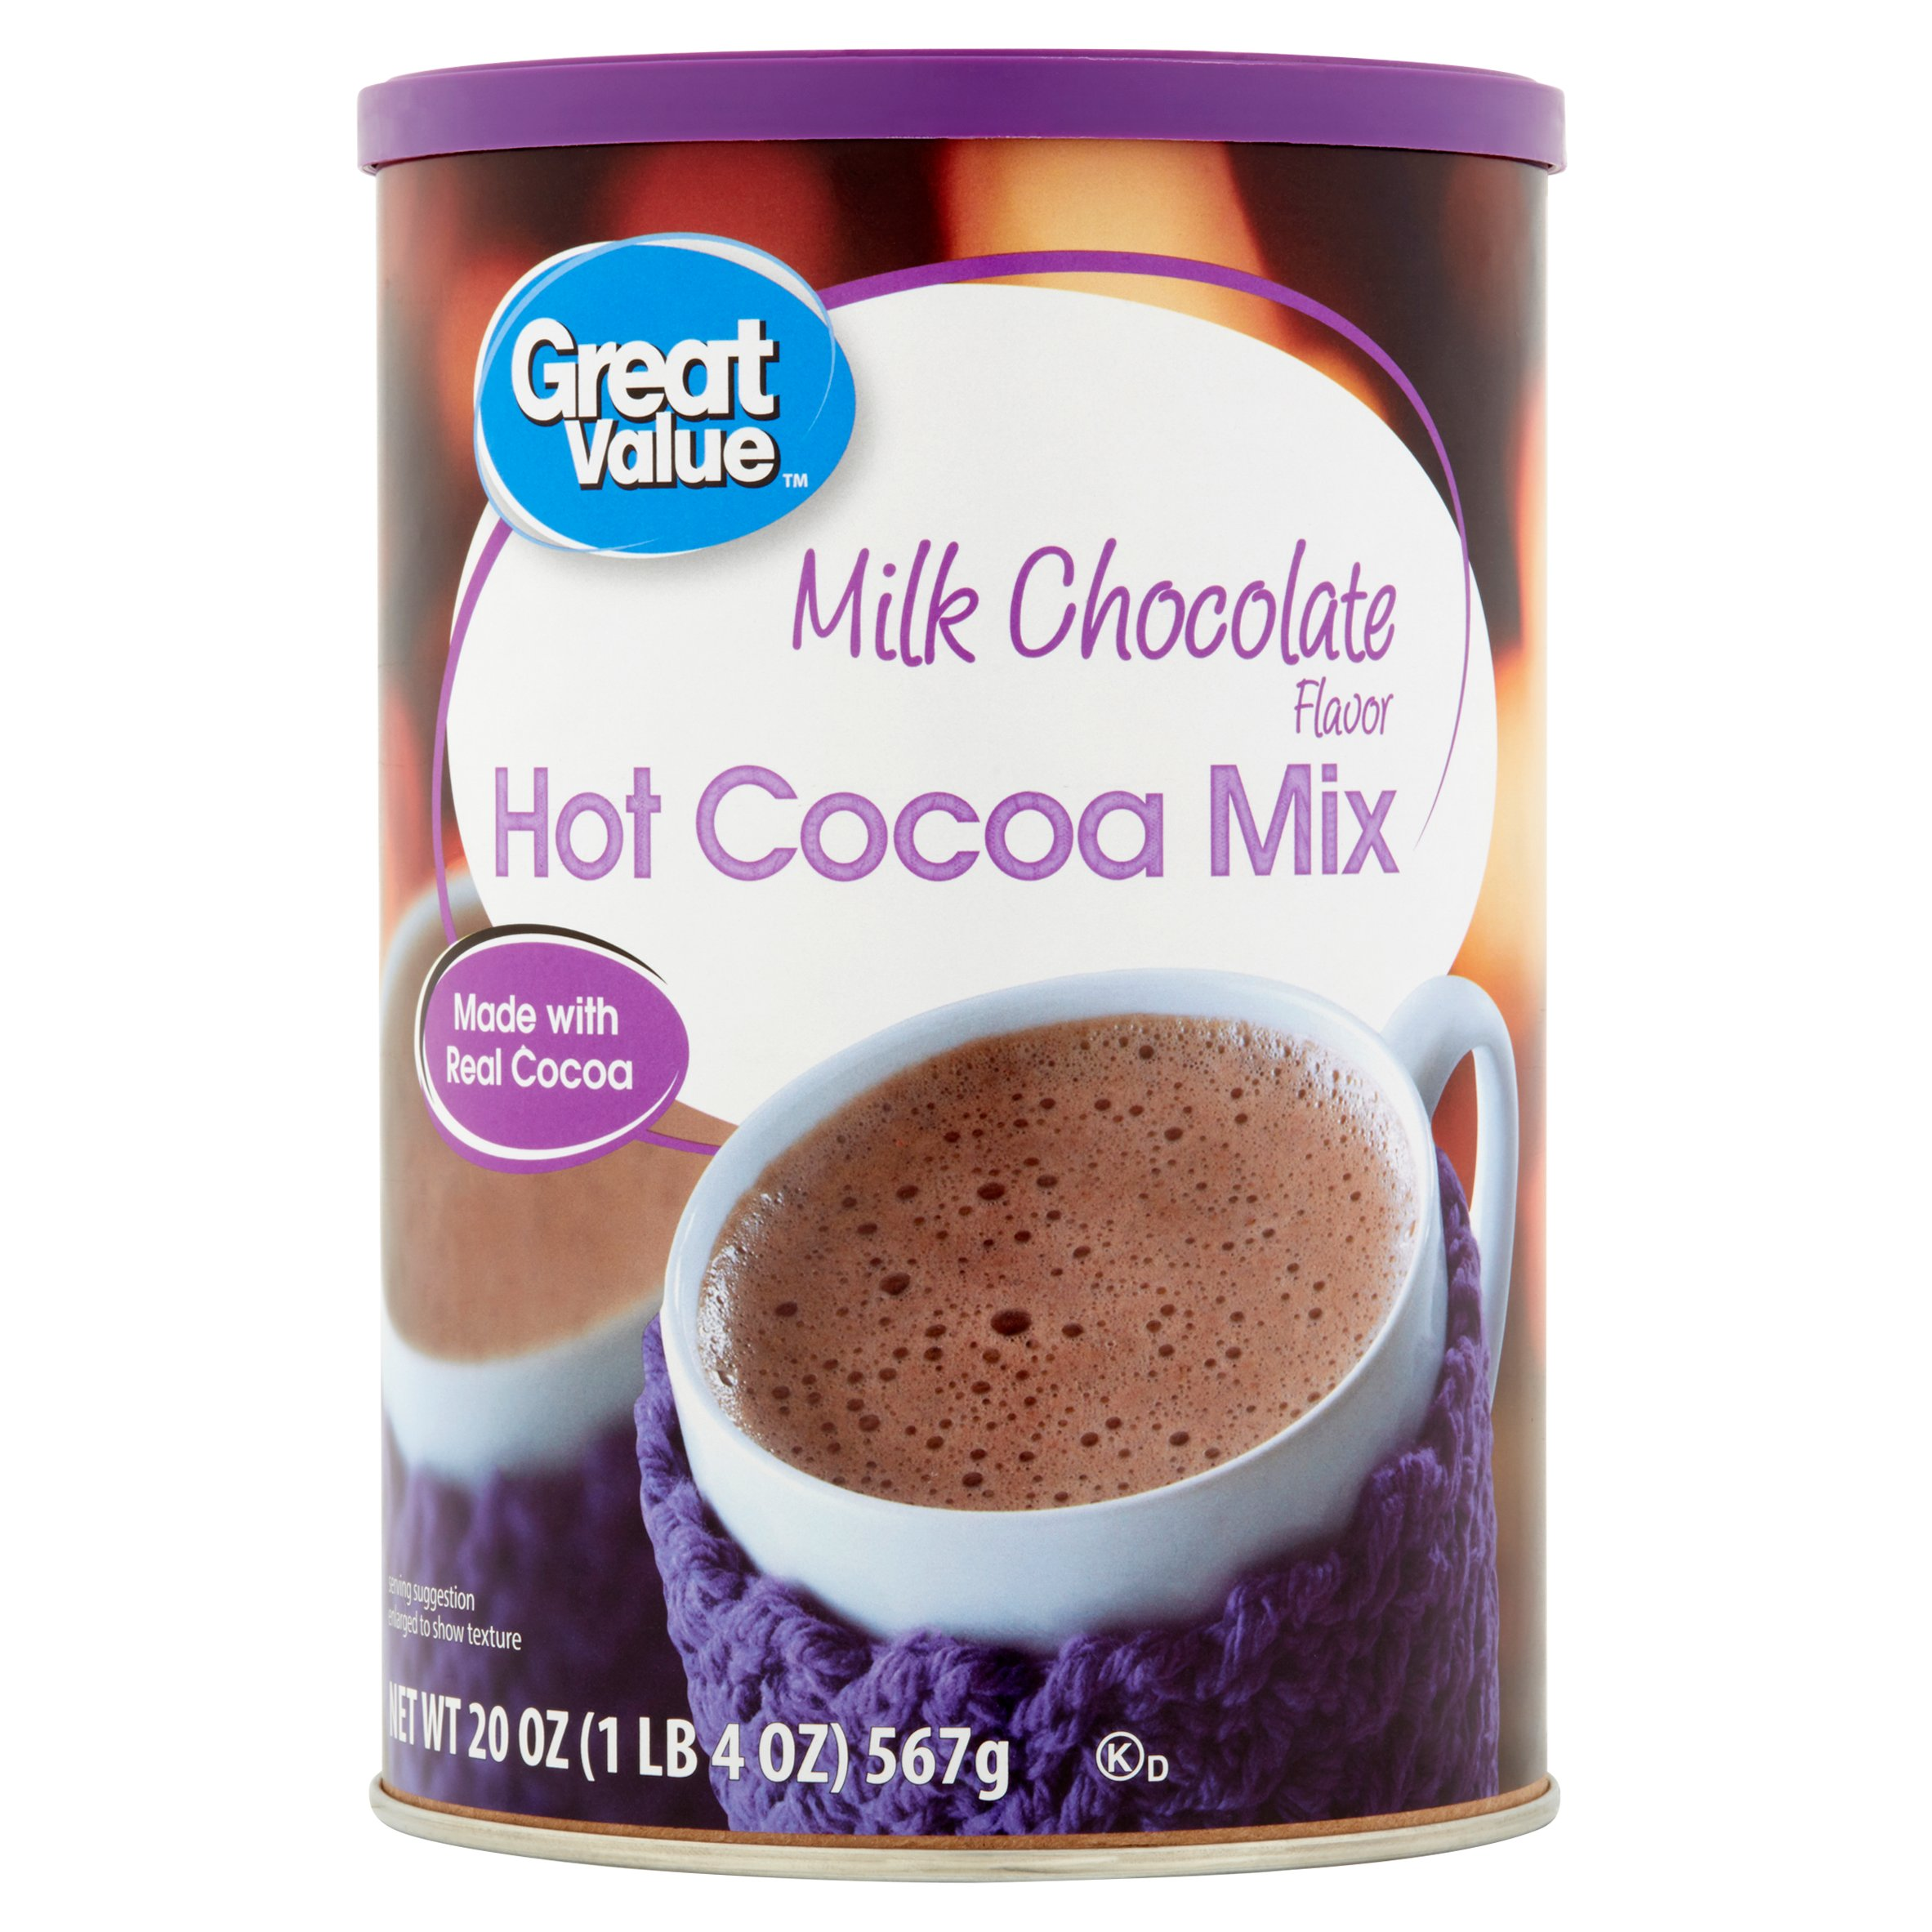 Great Value Milk Chocolate Hot Cocoa Mix, 20 oz